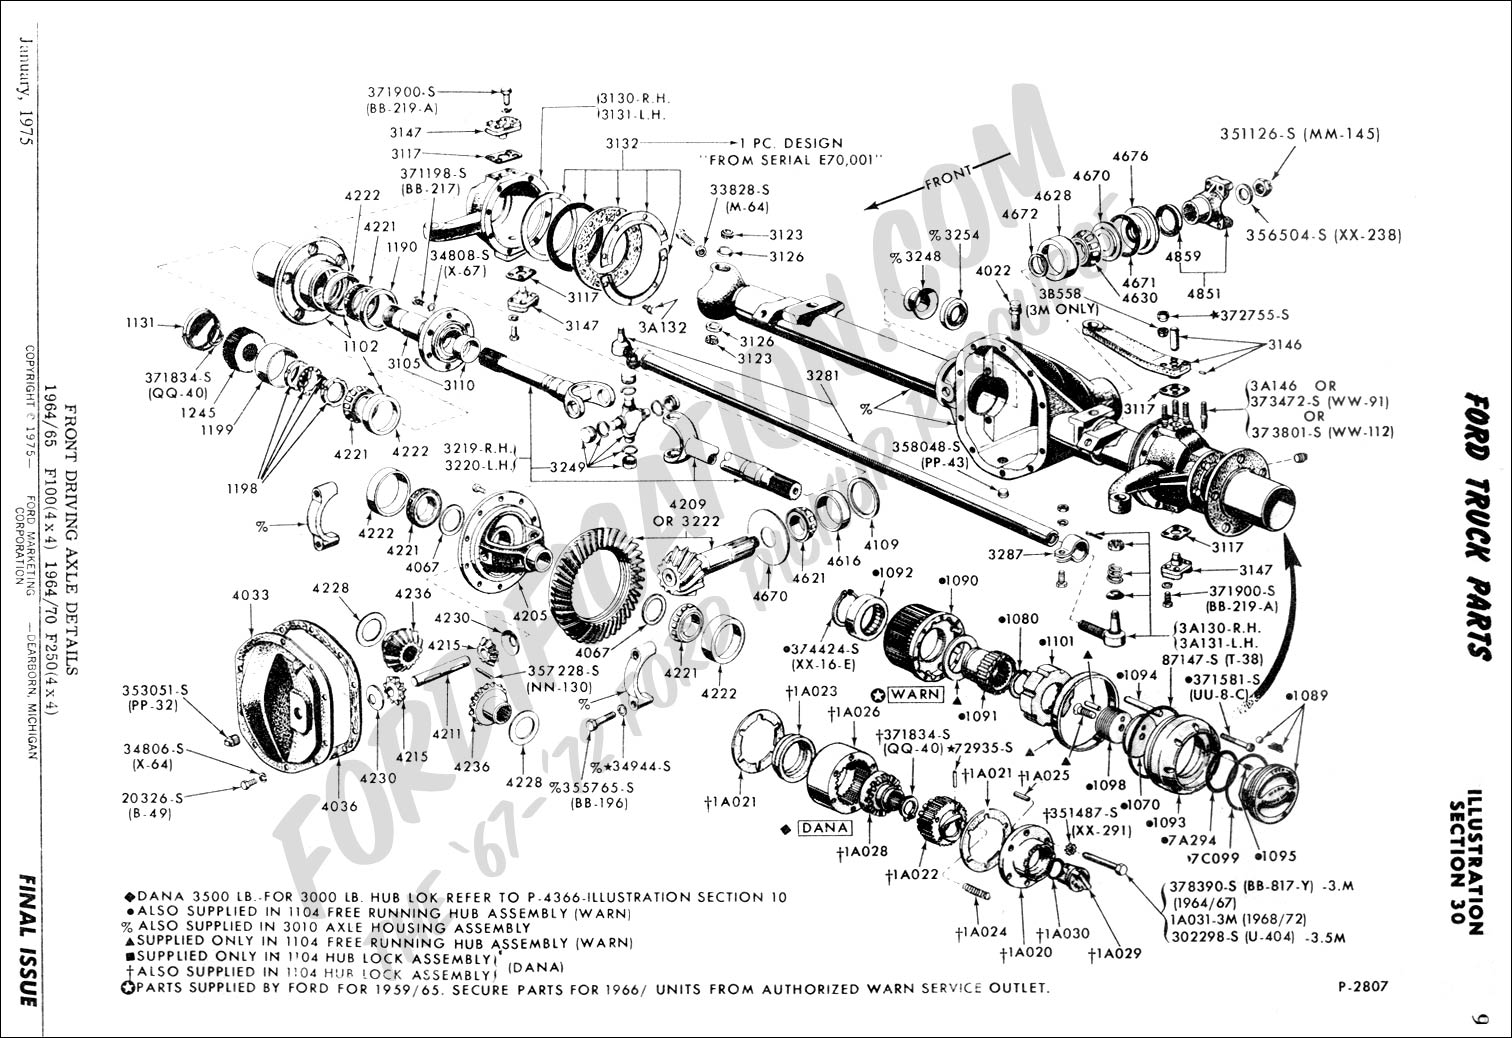 ford truck technical drawings and schematics - section a ... ford f 350 4x4 front axle diagram 2003 f350 front axle diagram #8